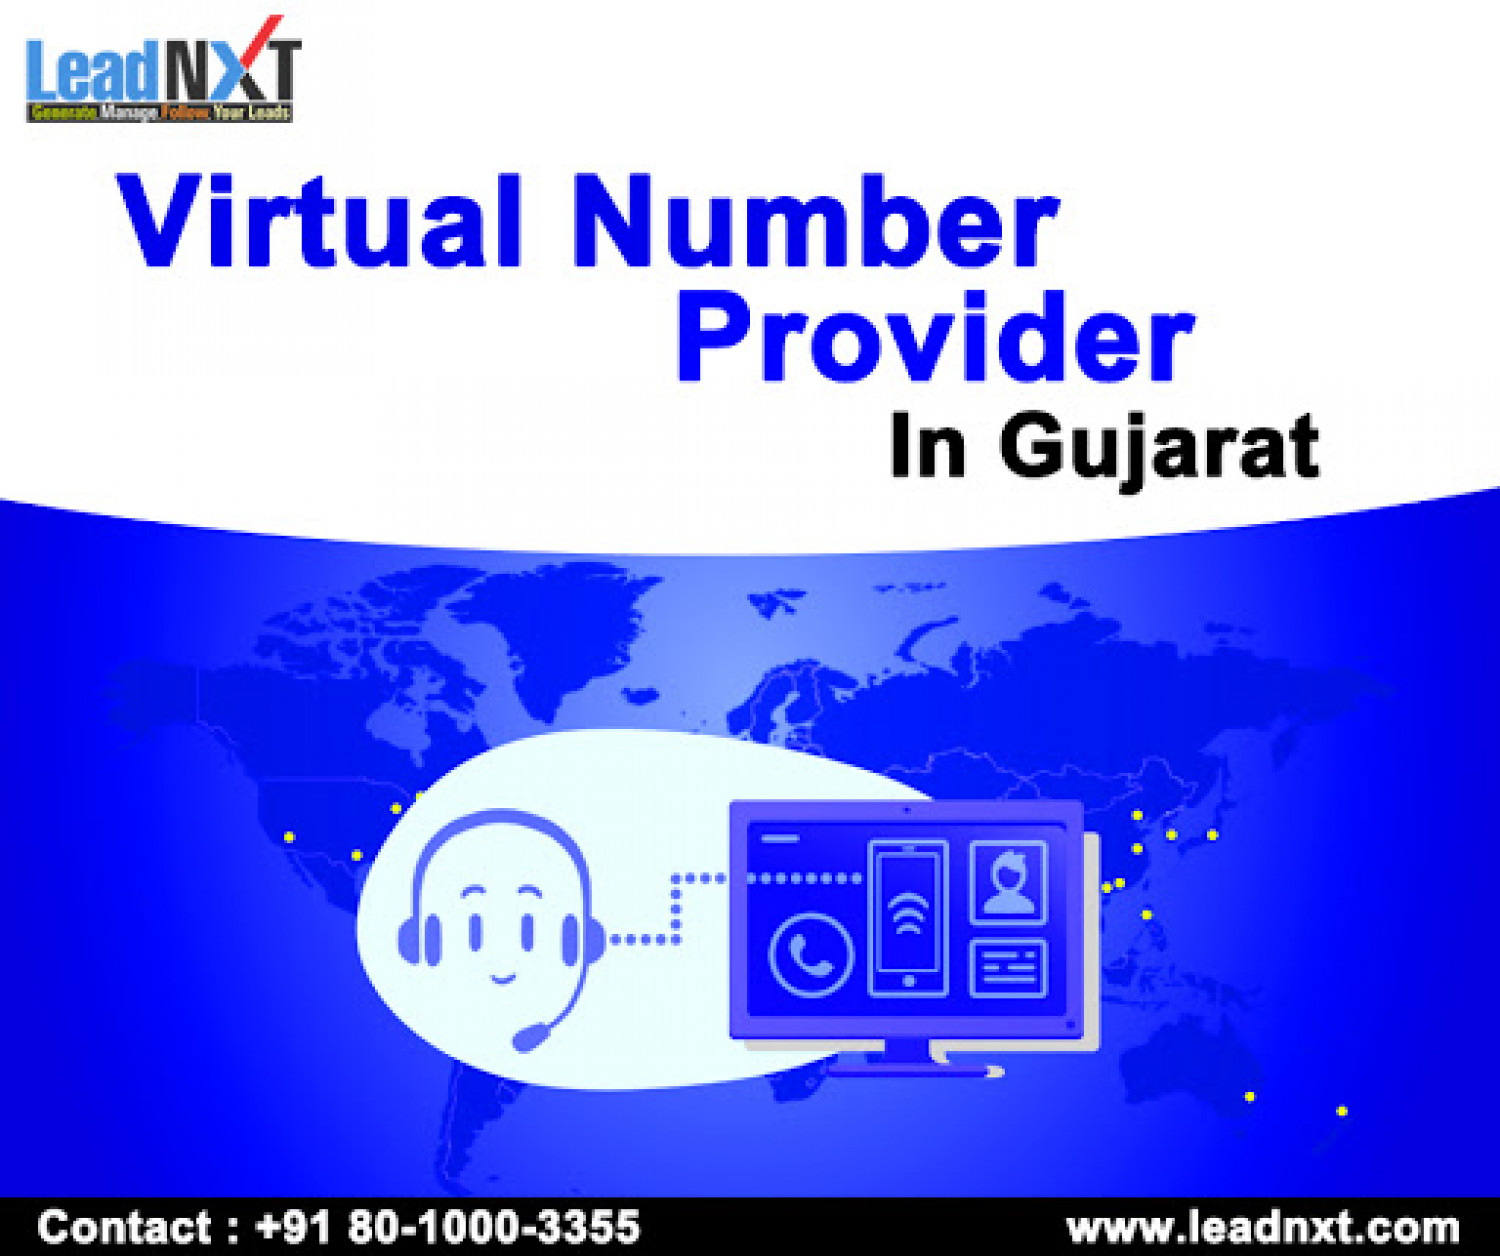 Virtual Number Provider in Gujarat Infographic